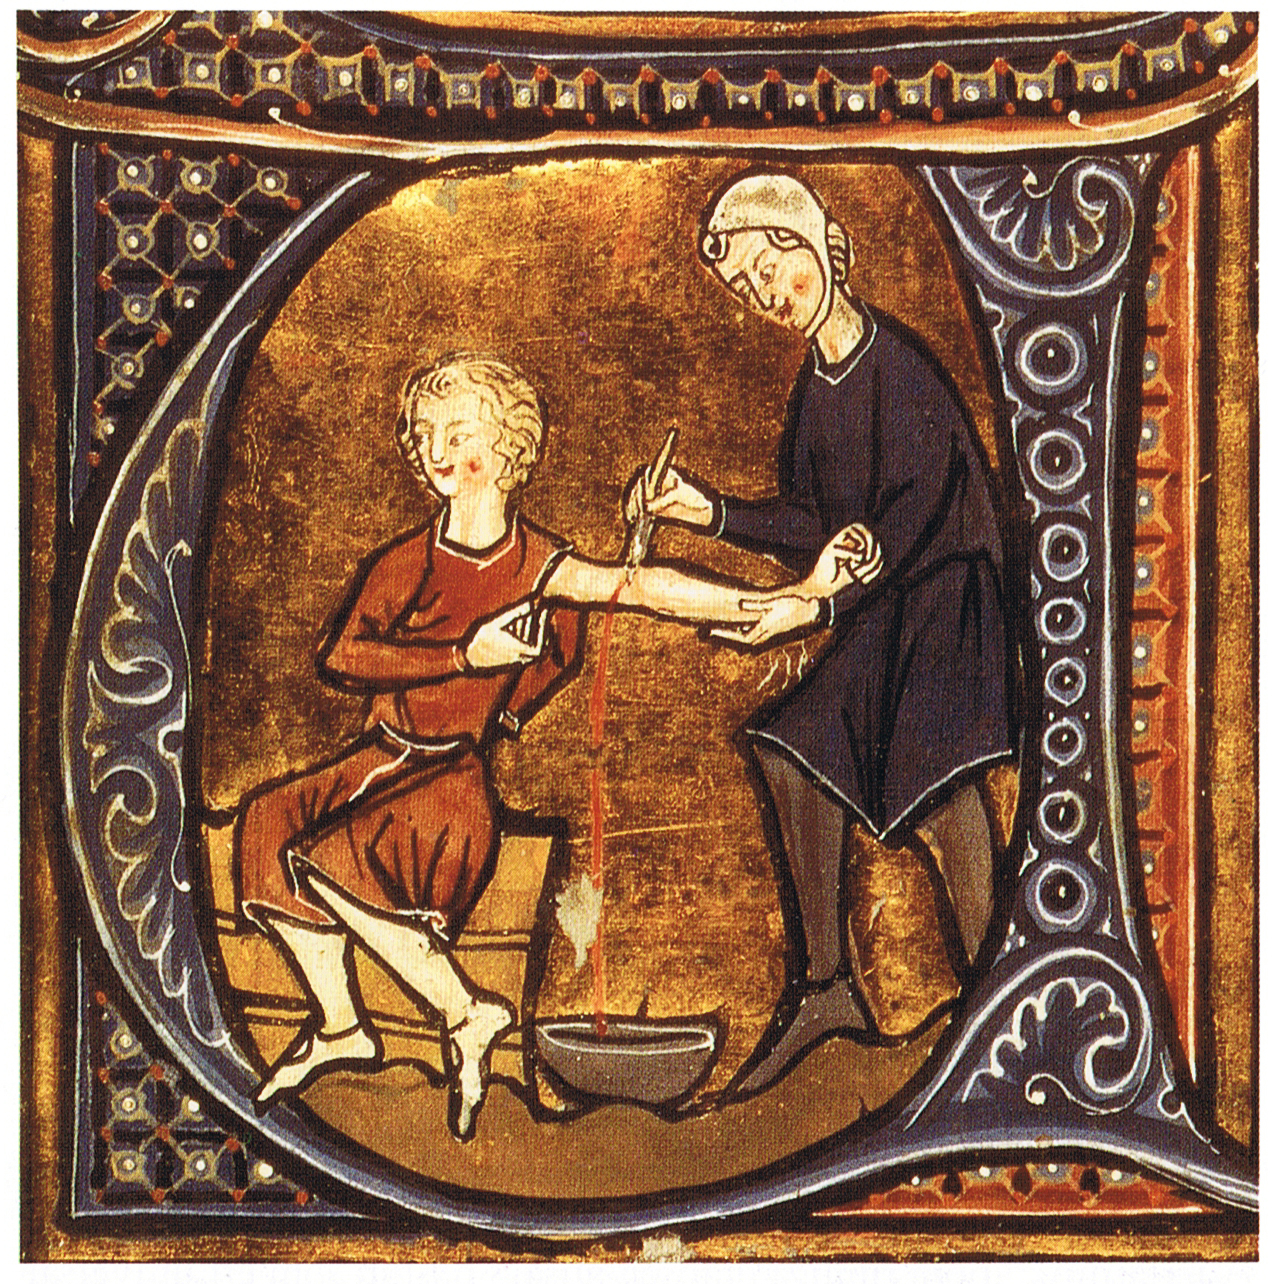 Bloodletting, as depicted in illustrated form (CC)